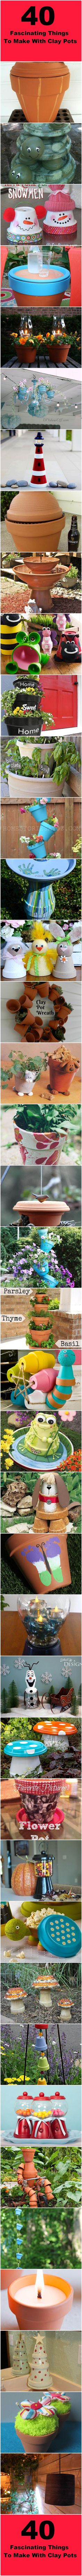 40 Fascinating Things To Make With Clay Pots